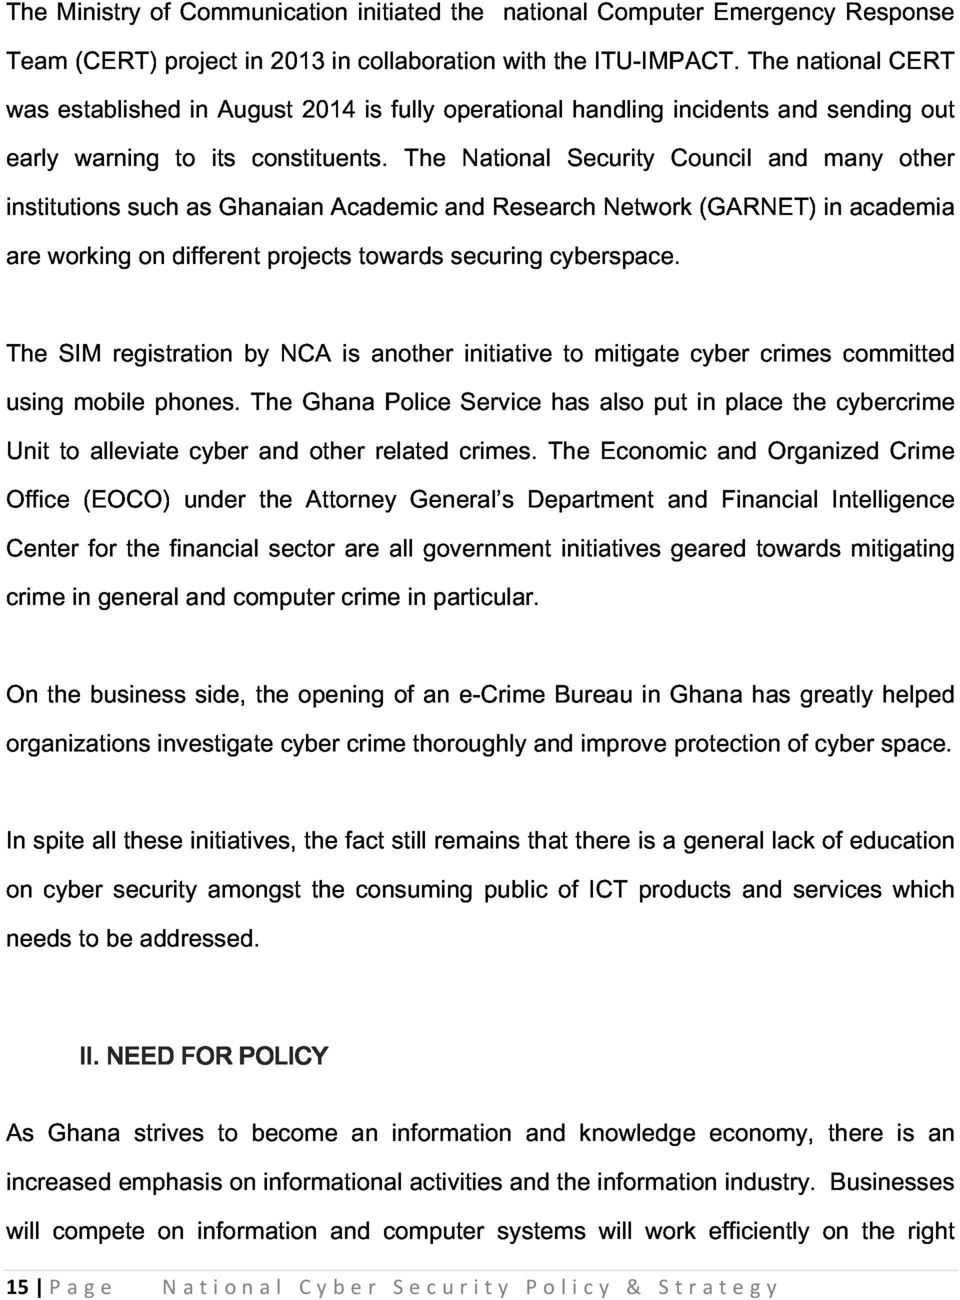 Academic The and National Research Security Network Council (GARNET) and in many academia other out are The working SIM registration on different by projects NCA is towards another securing